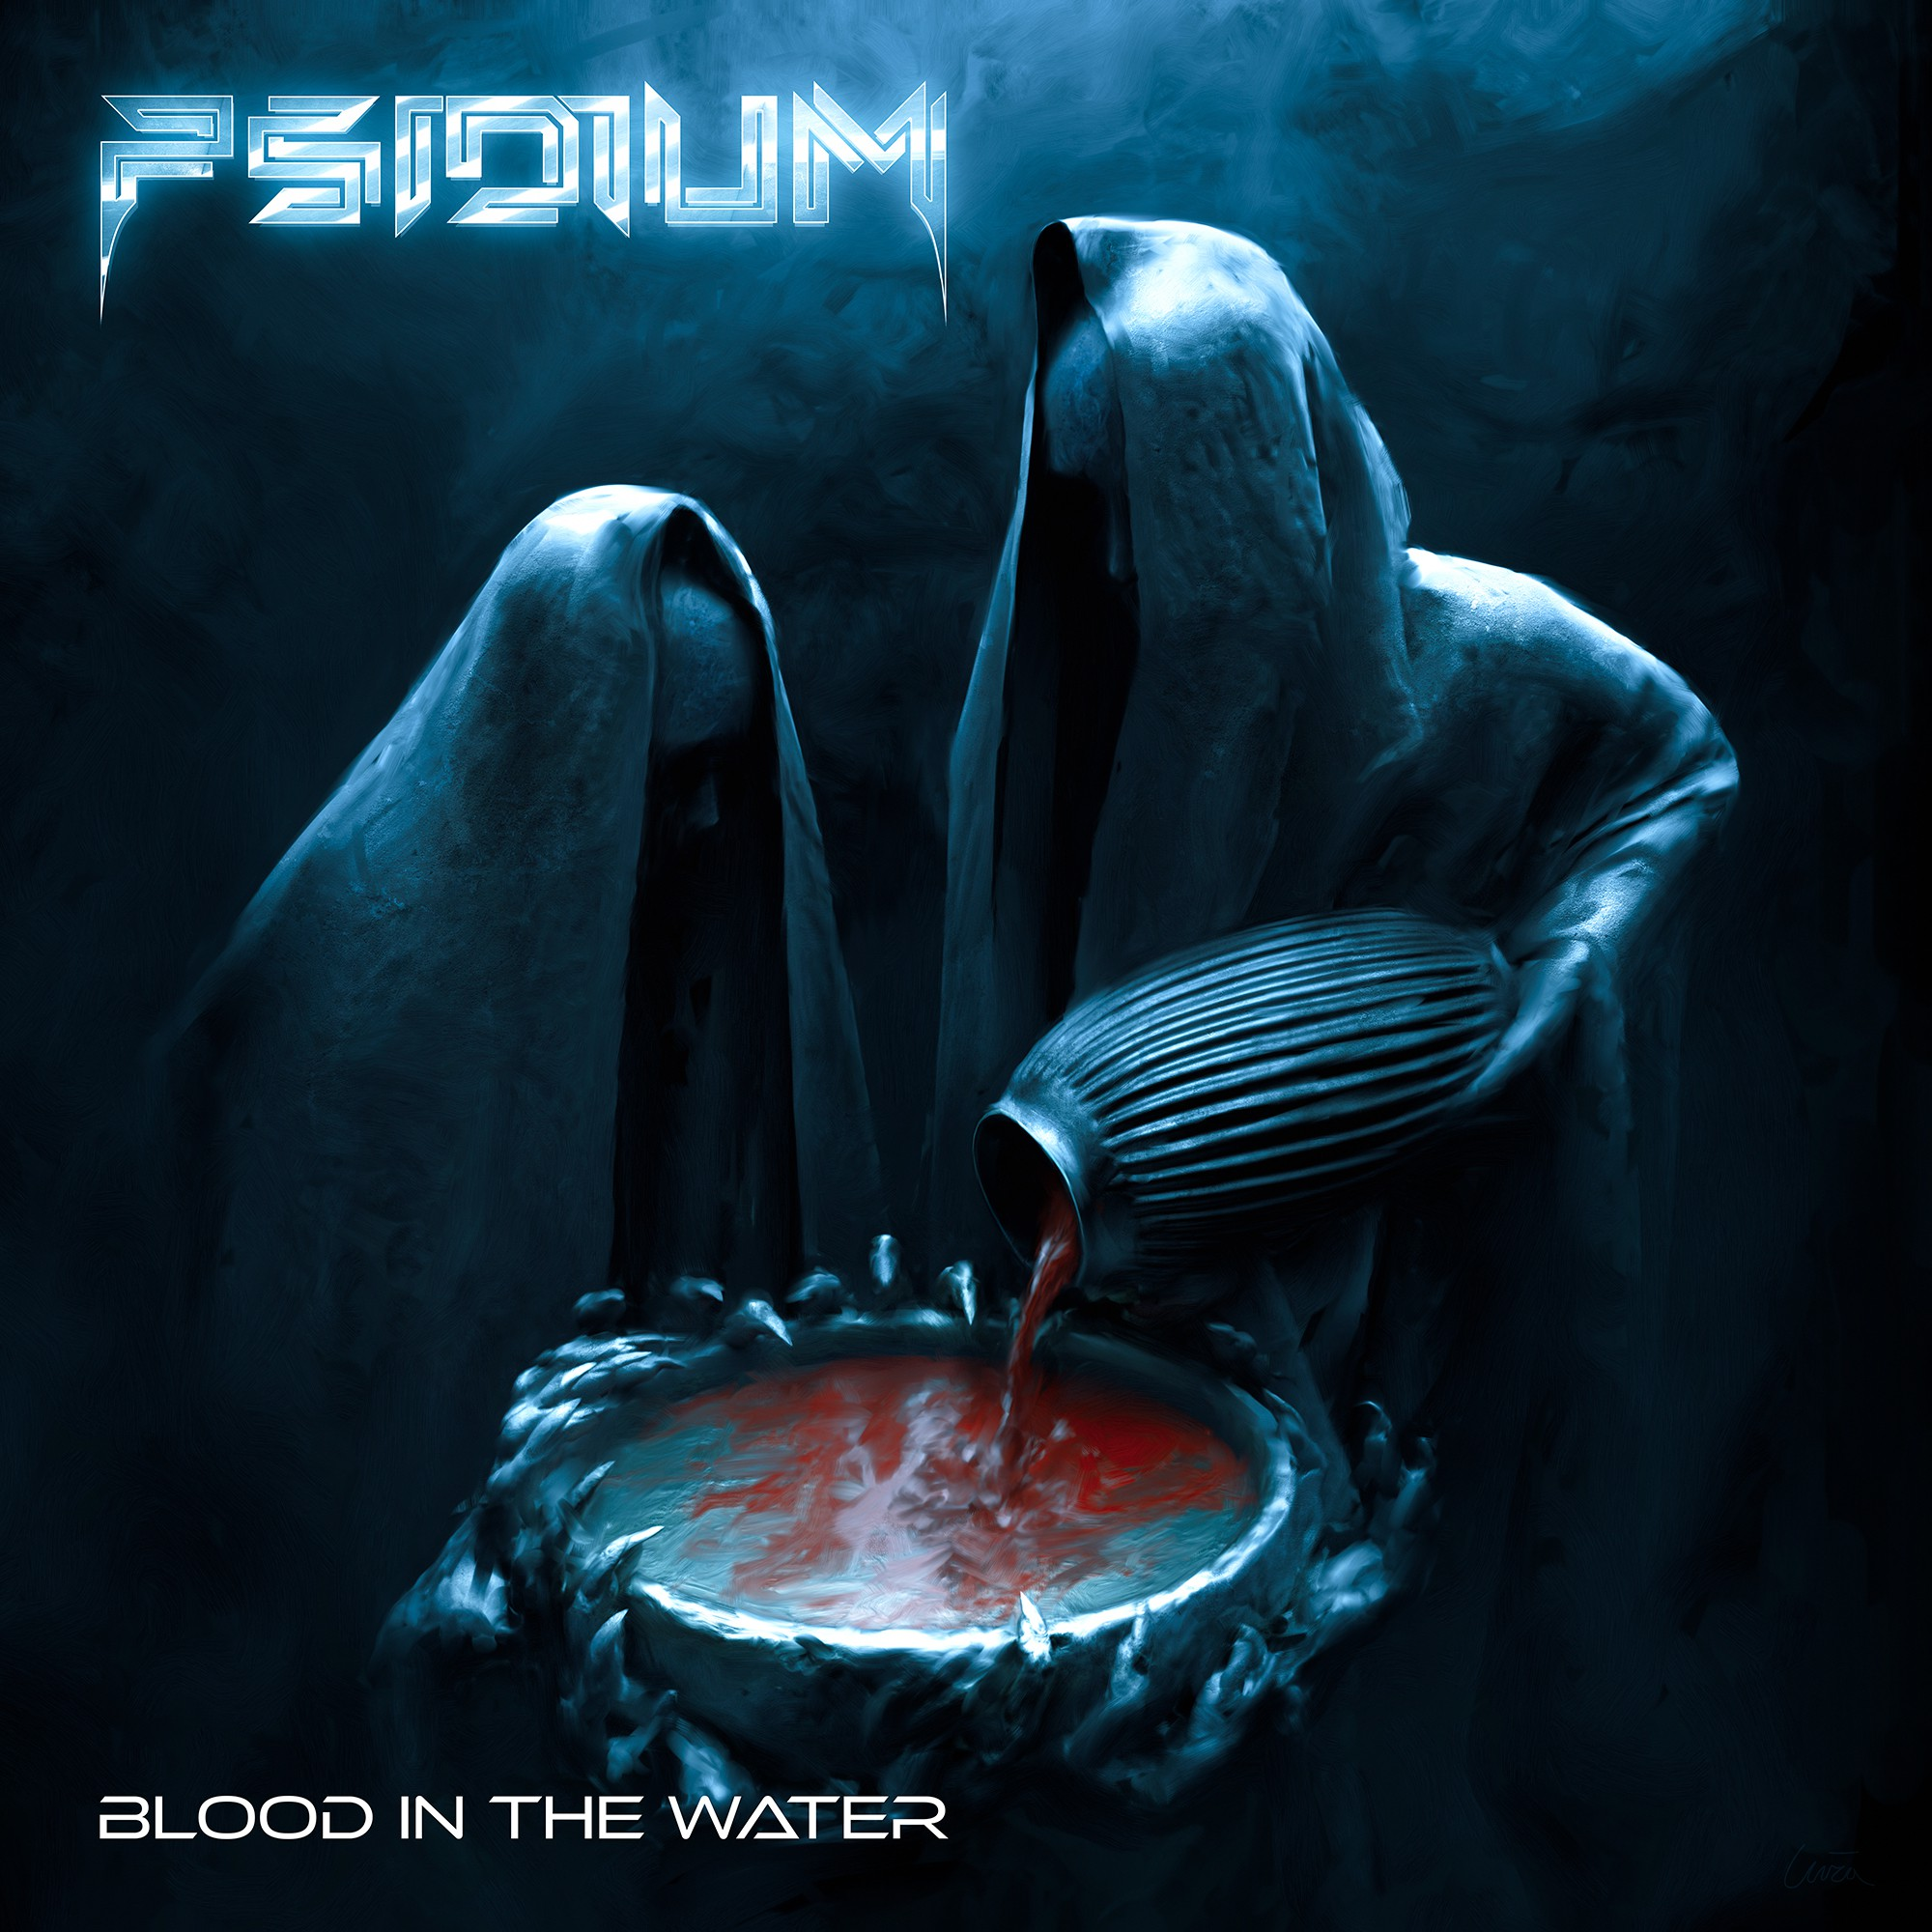 """Album cover for """"Blood In The Water"""" by Psidium"""